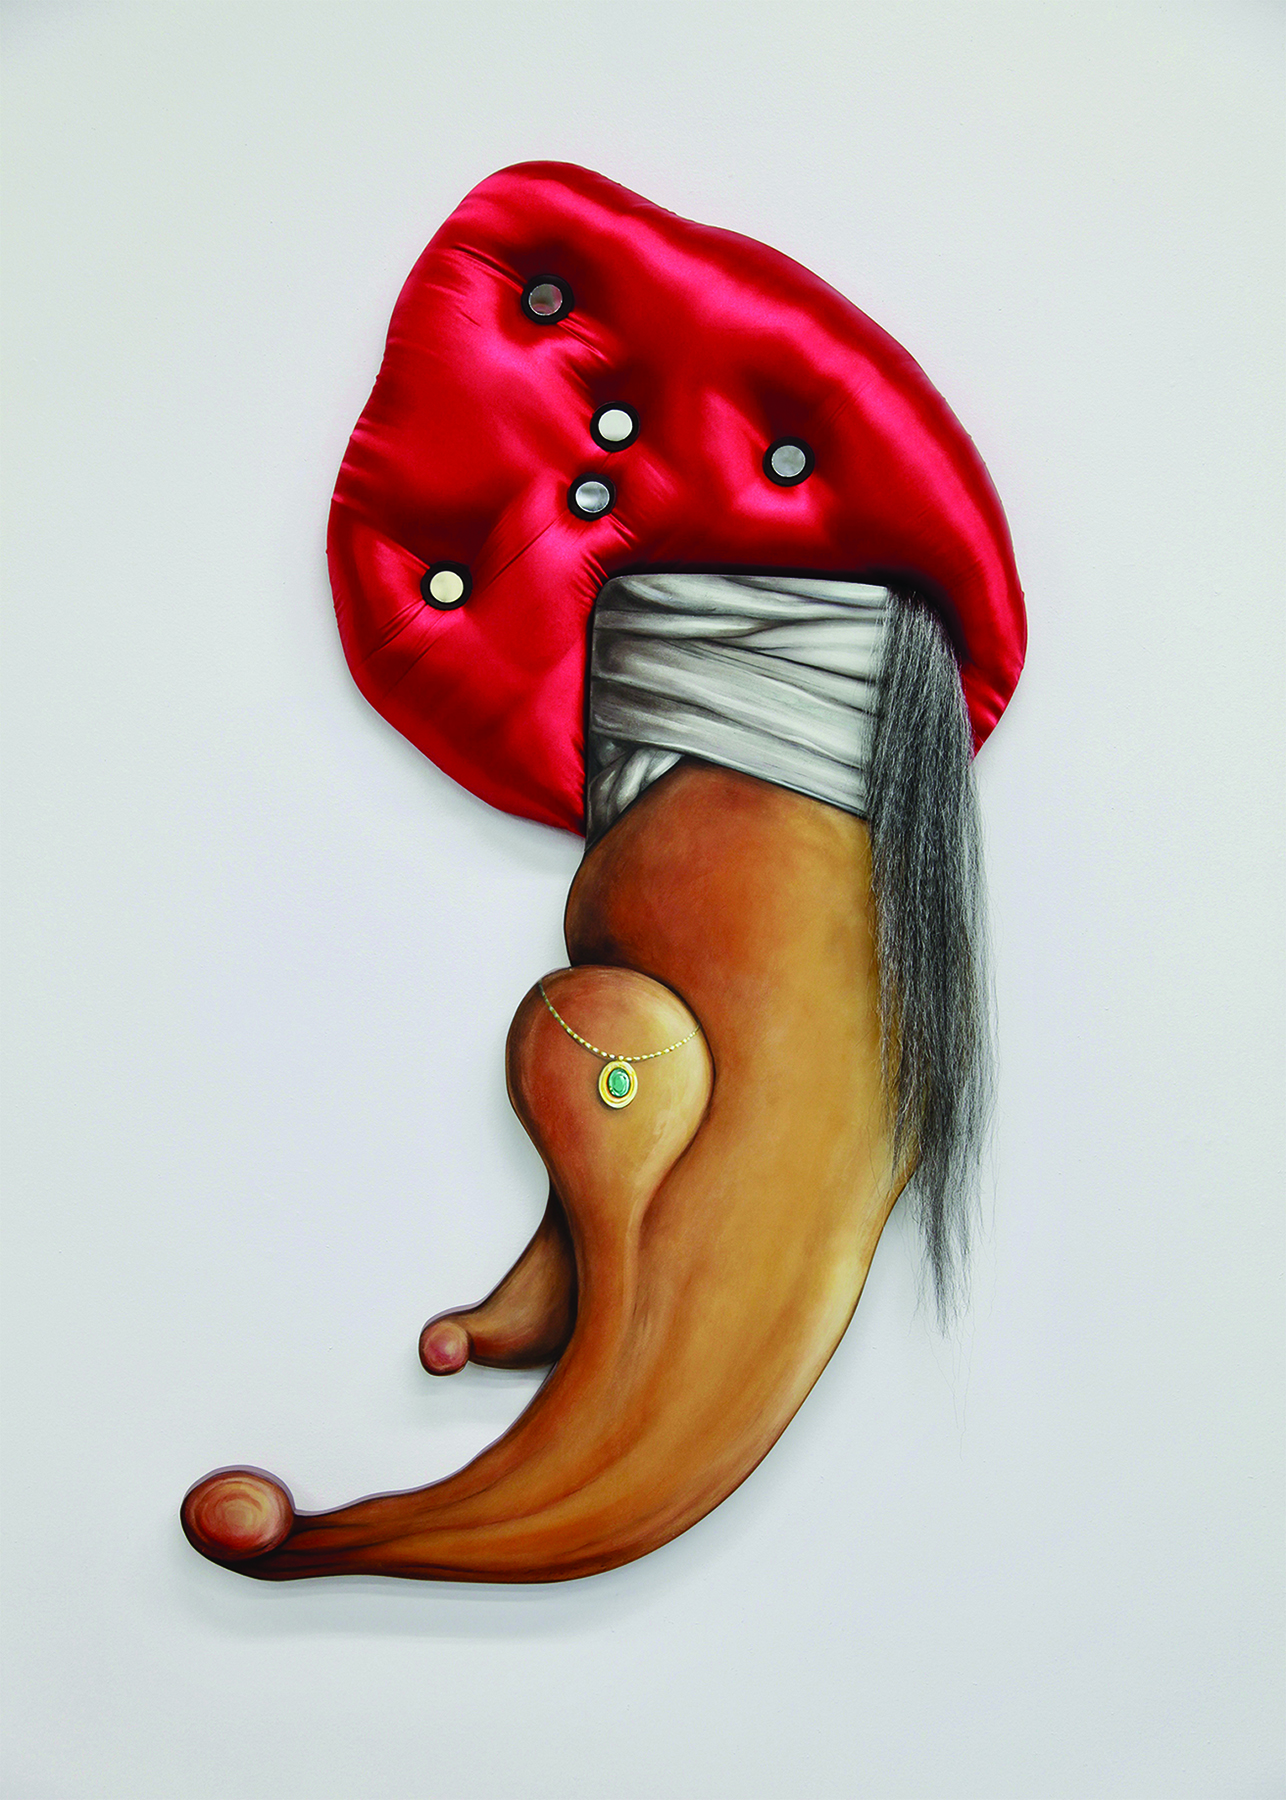 Mixed media sculpture hangs on a white gallery wall. The lower half of the artwork is painted wood and depicts a jeweled necklace and white wrapped fabric. The upper part of the piece is a padded turban like shape made of shiny red fabric, with white buttons imbedded in it. A tail like drape of artificial grey hair is draped on the right side of the object.